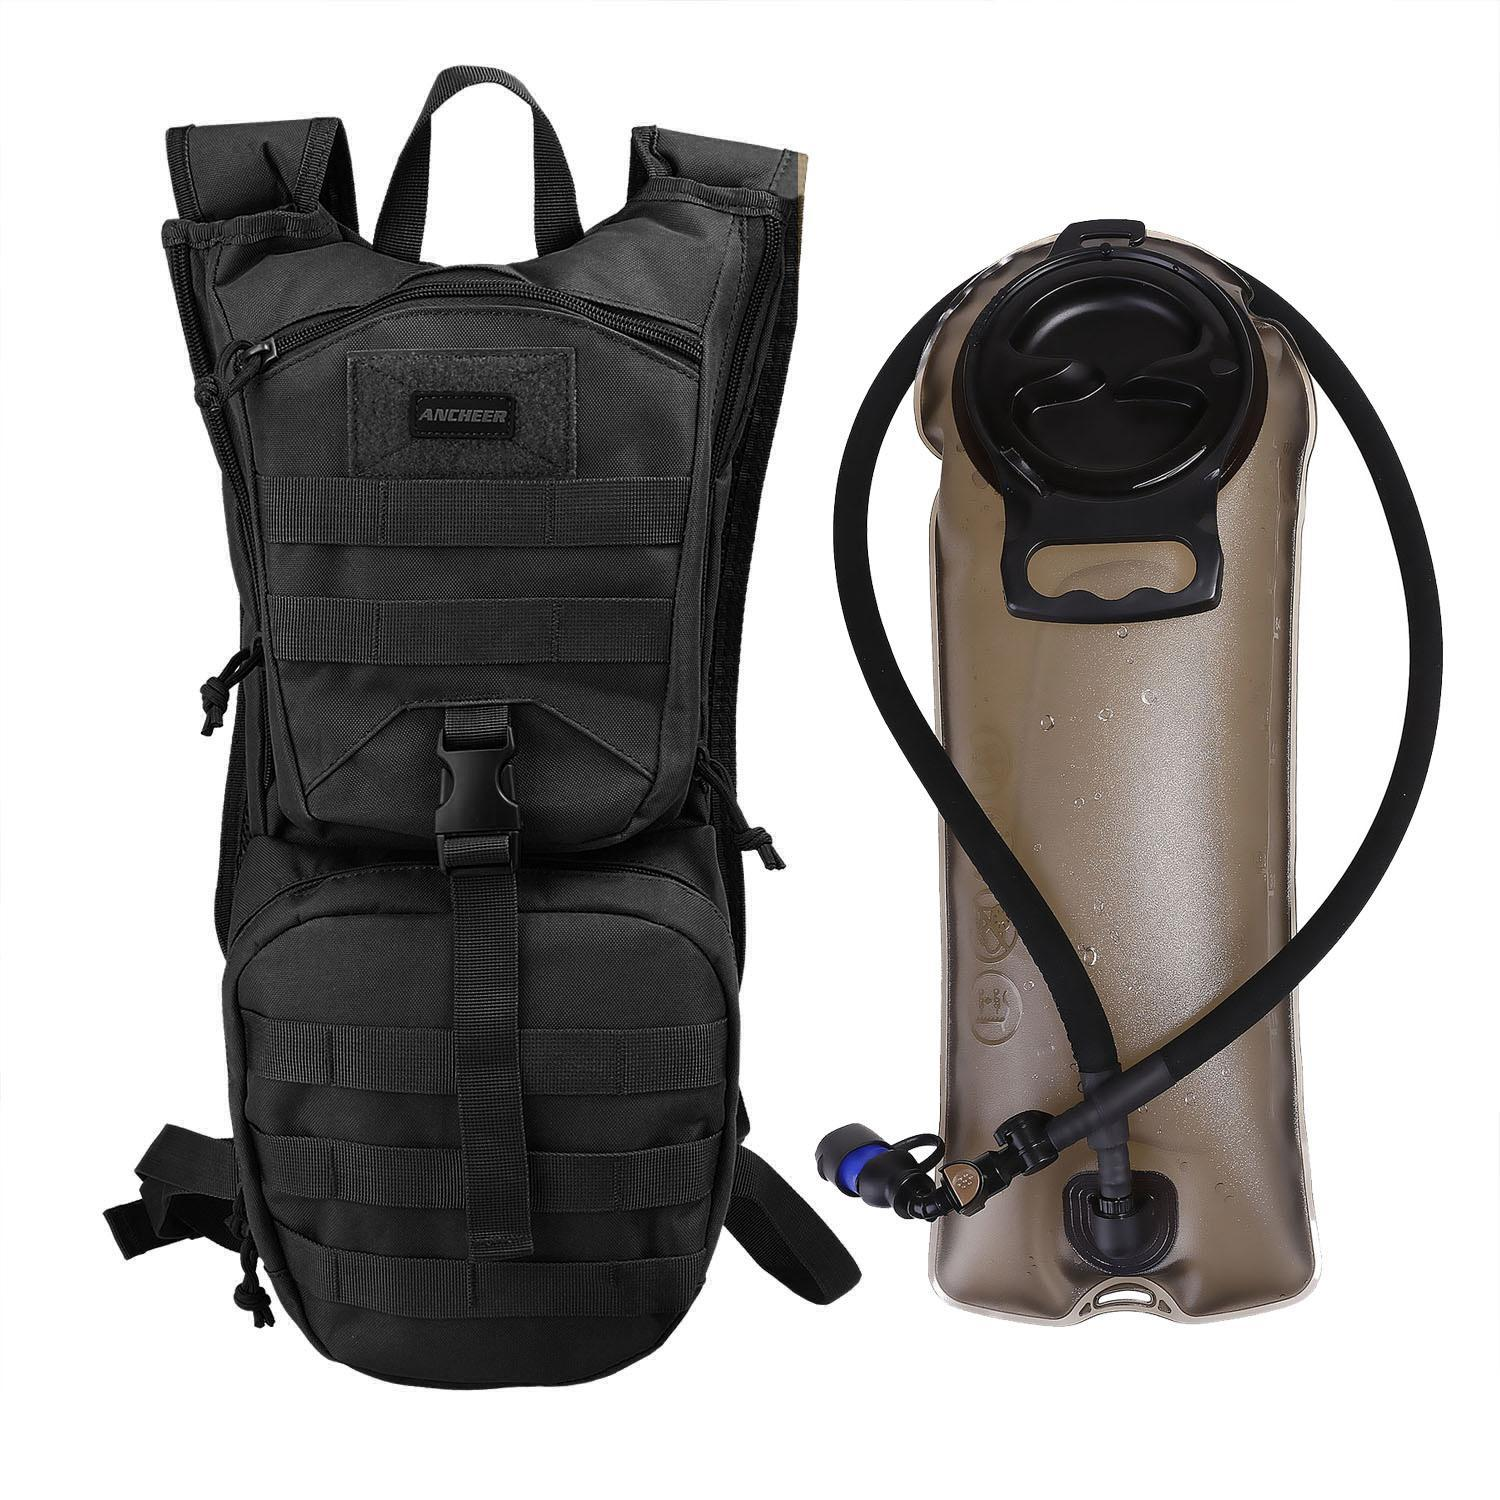 Oxford Tactical Hydration Backpack 2.5l Hydration System Climbing Survival Hiking Pouch Backpack Bladder Water Bag MAEHE by